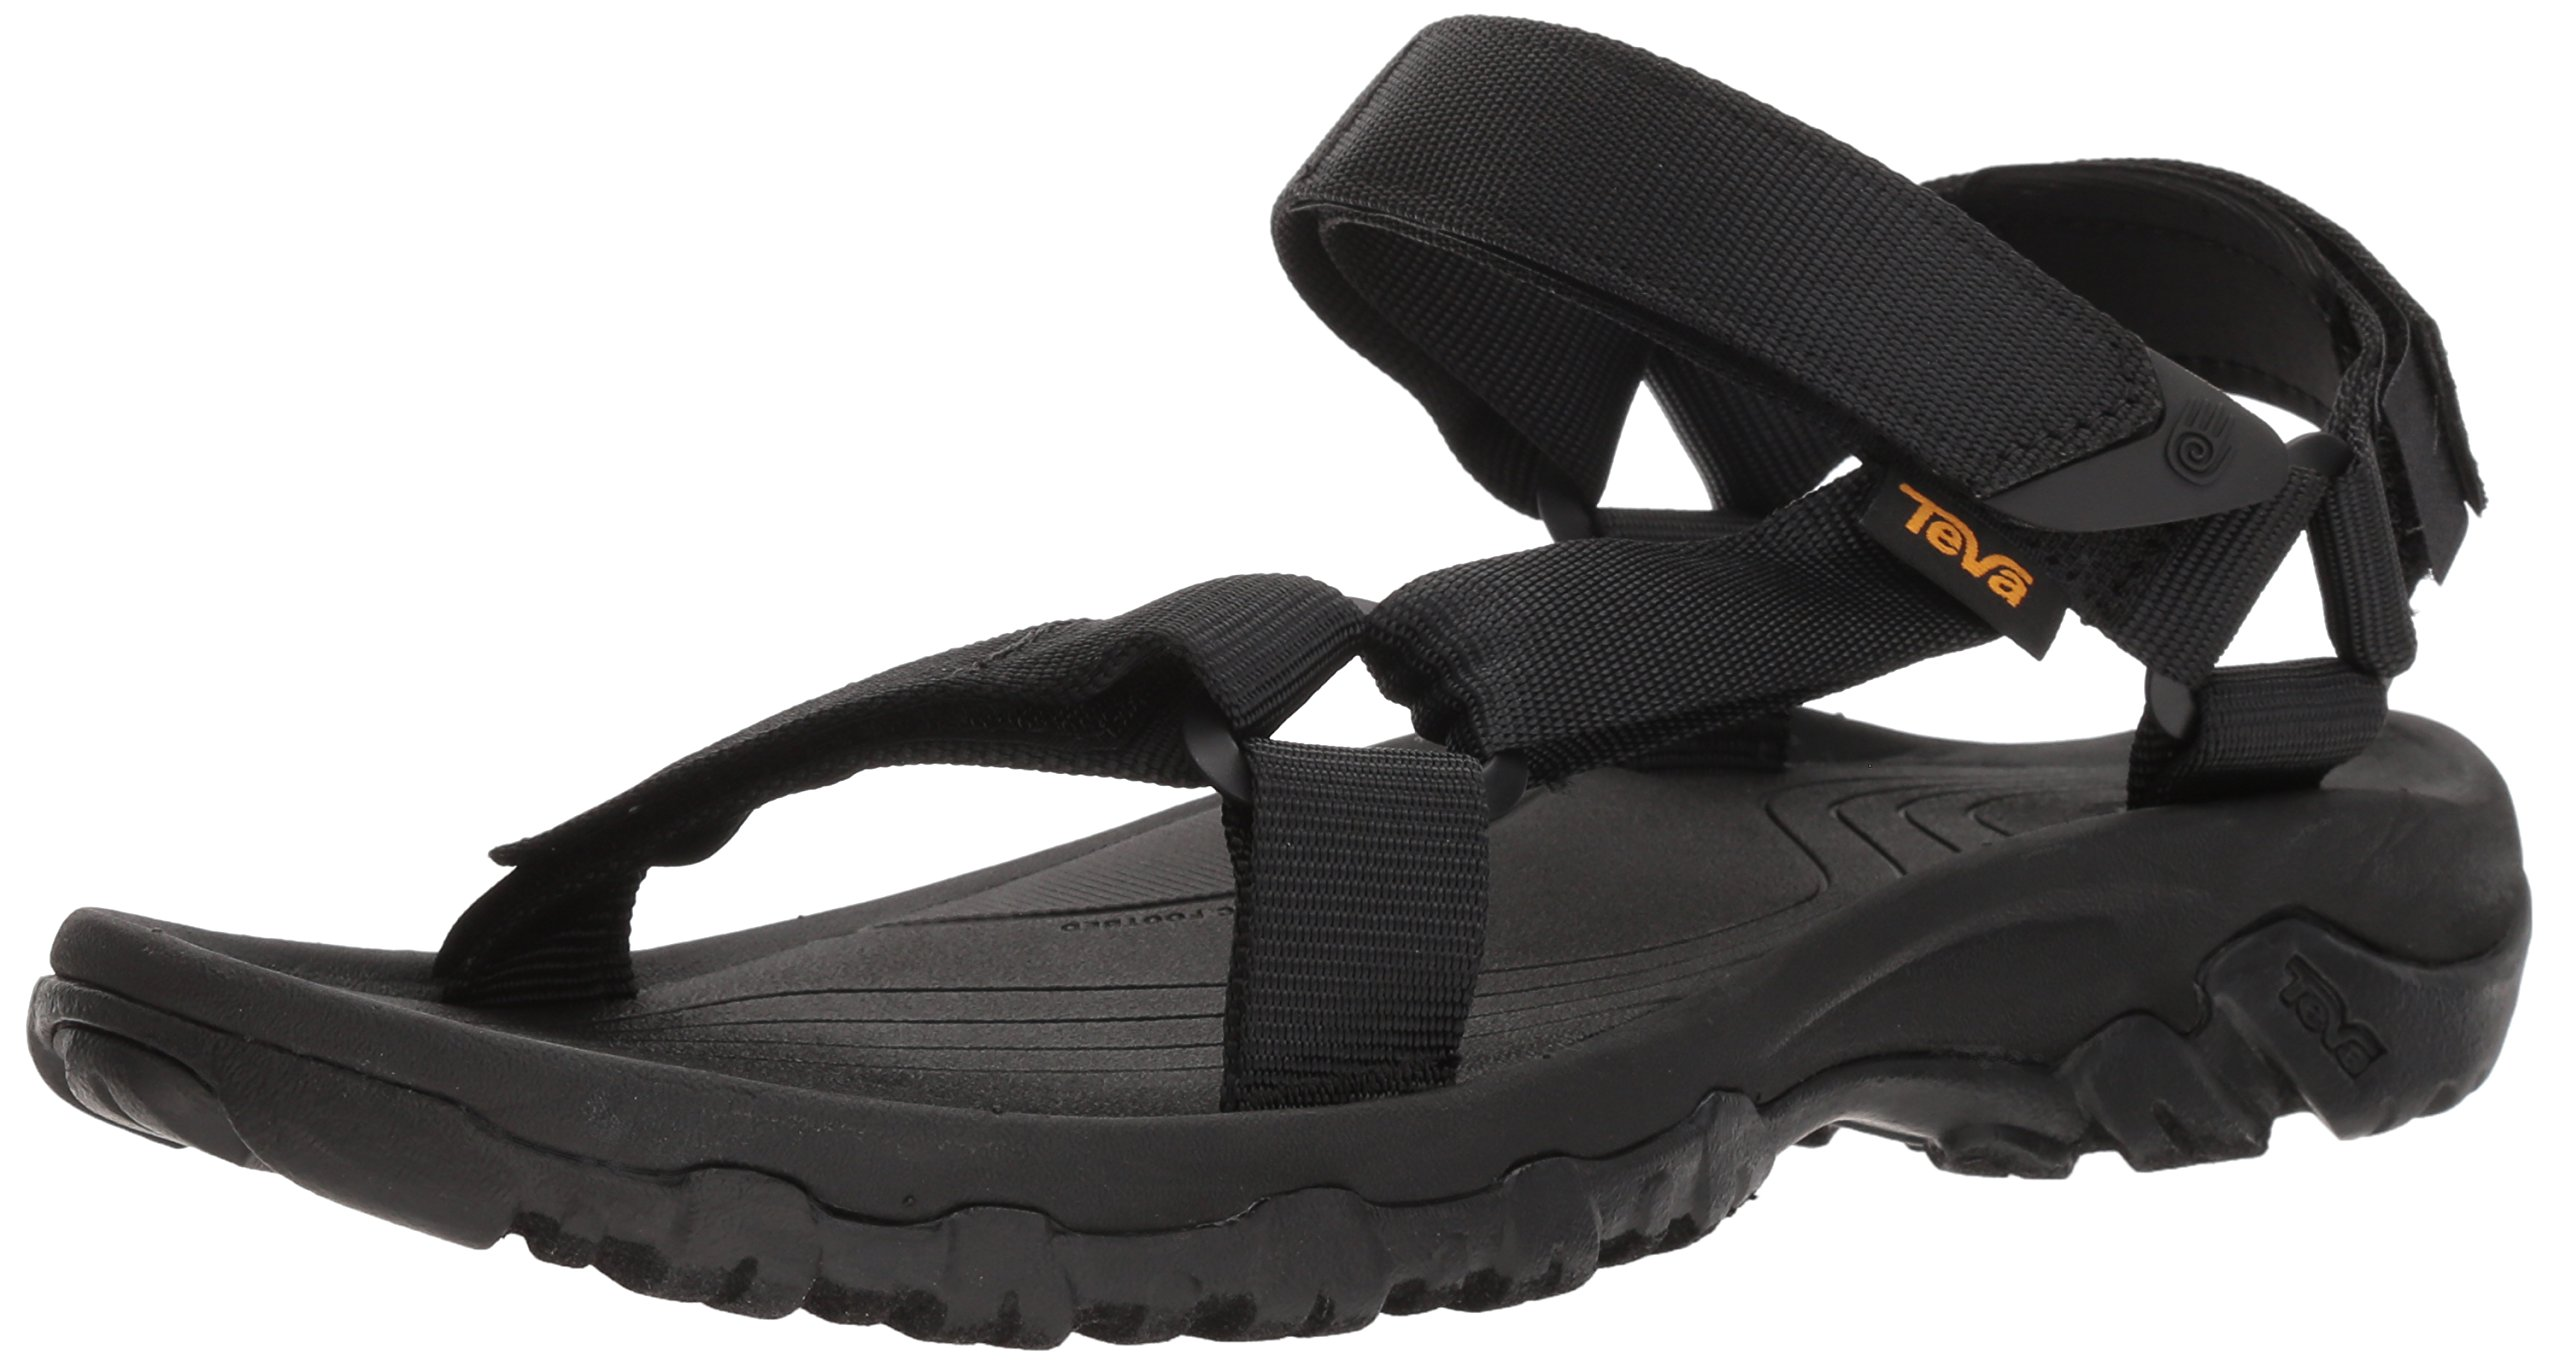 e3e25d5cb Cheap Sandal Sport, find Sandal Sport deals on line at Alibaba.com